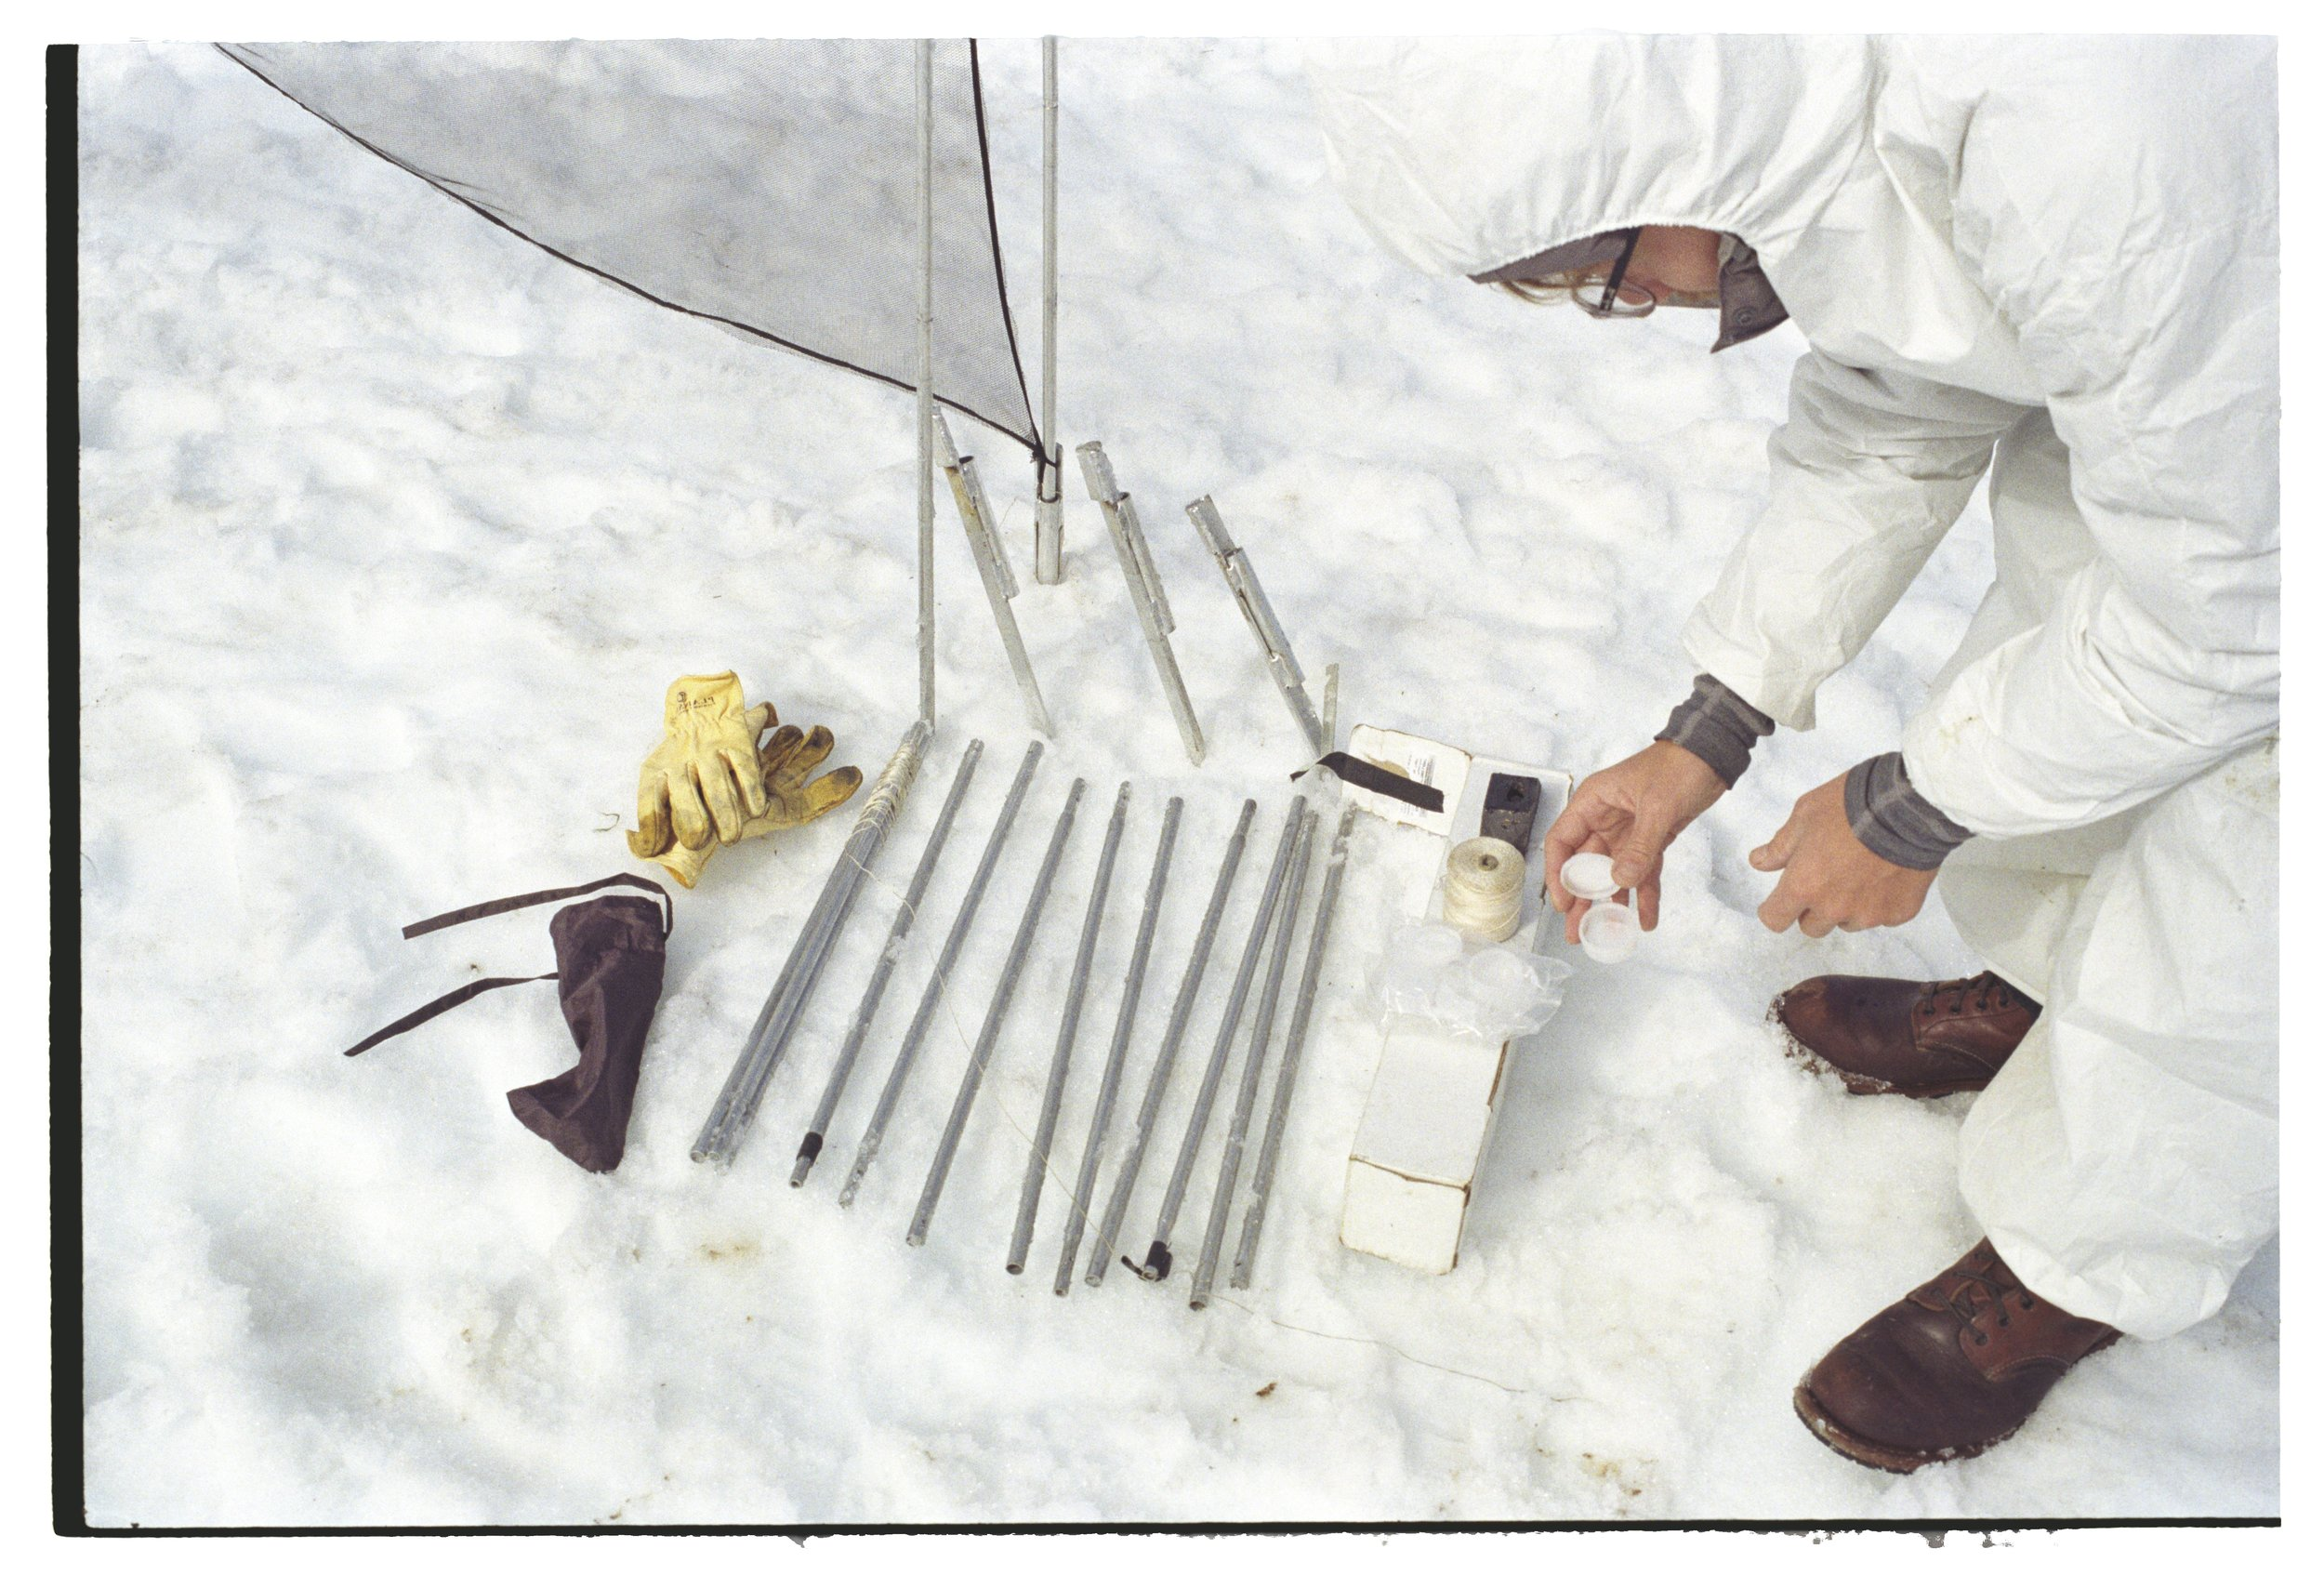 c with glaicer tools.jpg